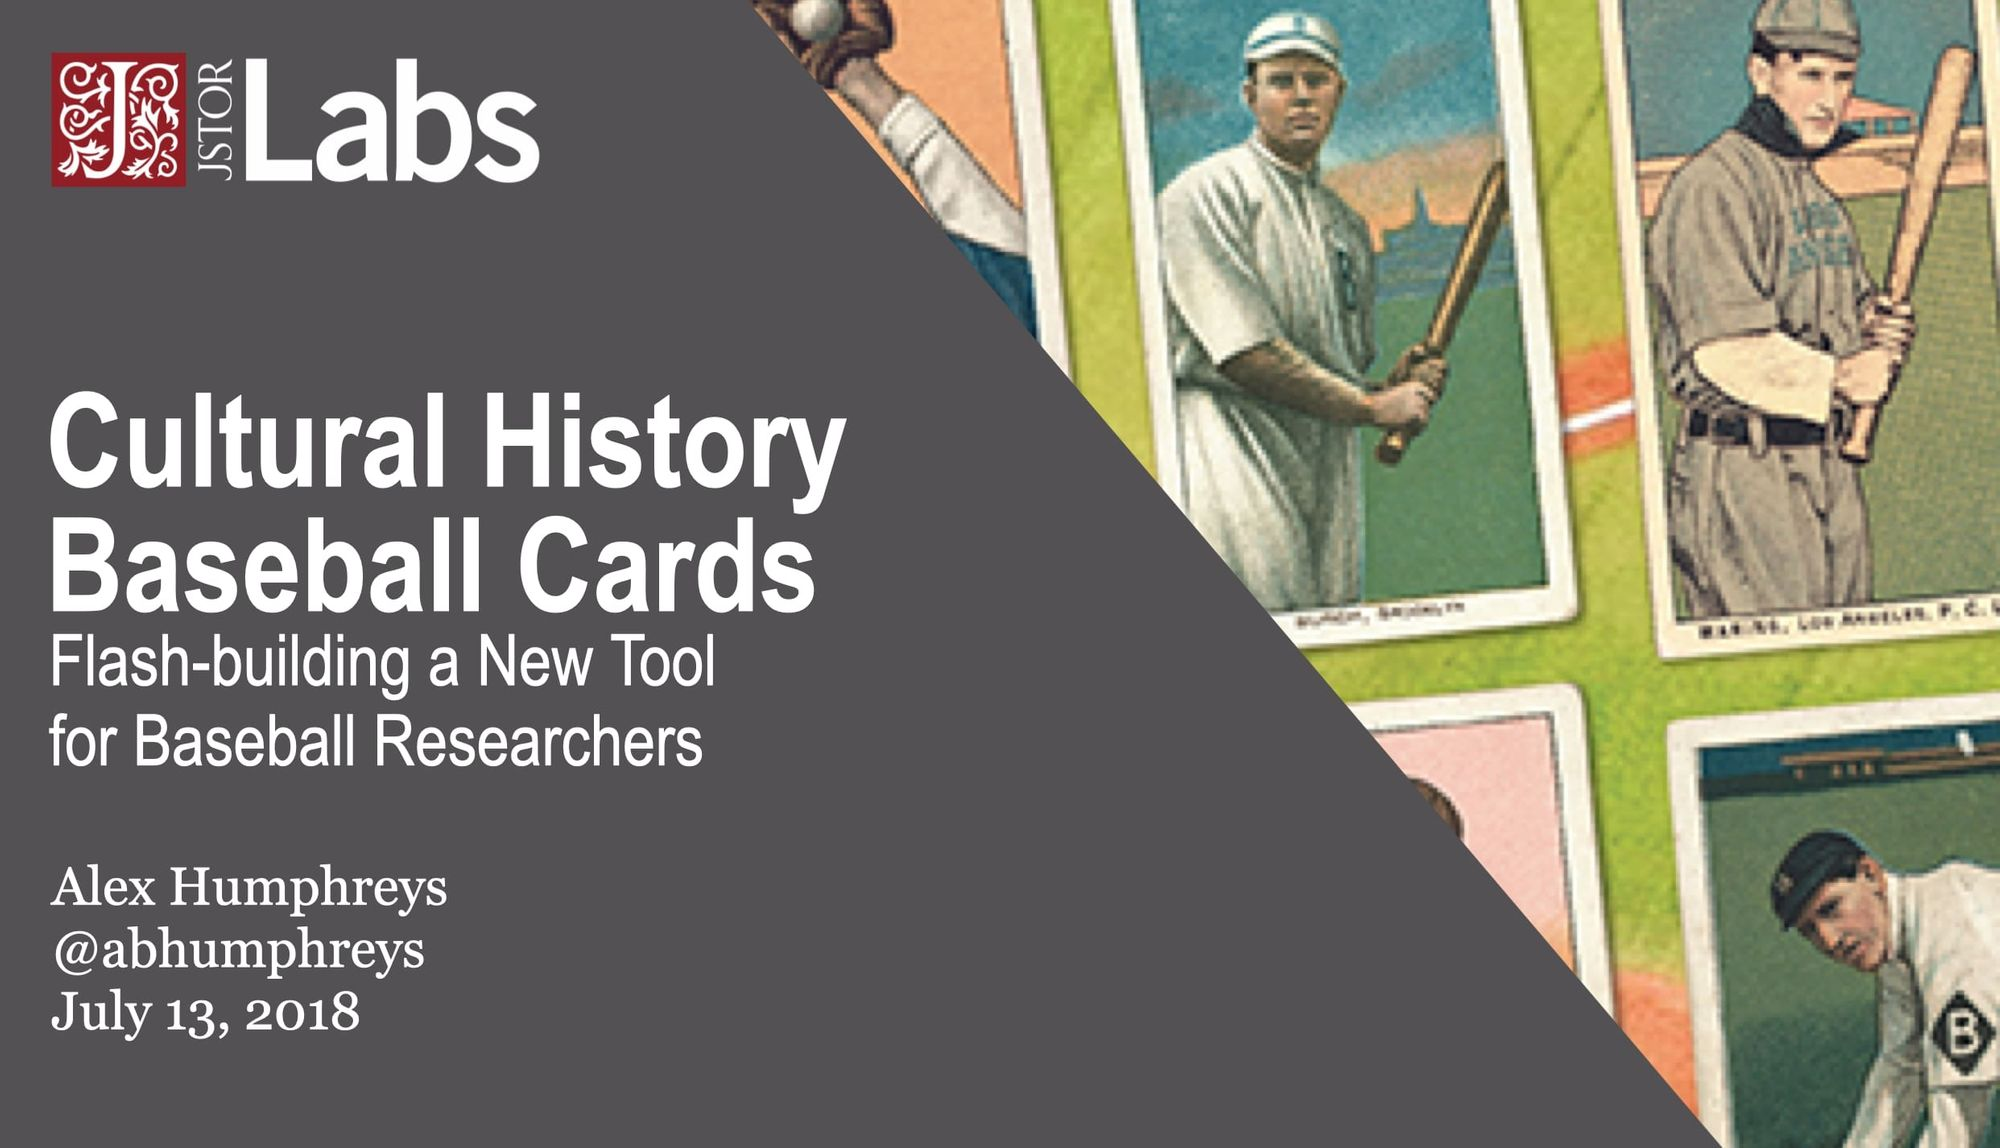 Cultural History Baseball Cards: Flash-building a New Tool for Baseball Researchers